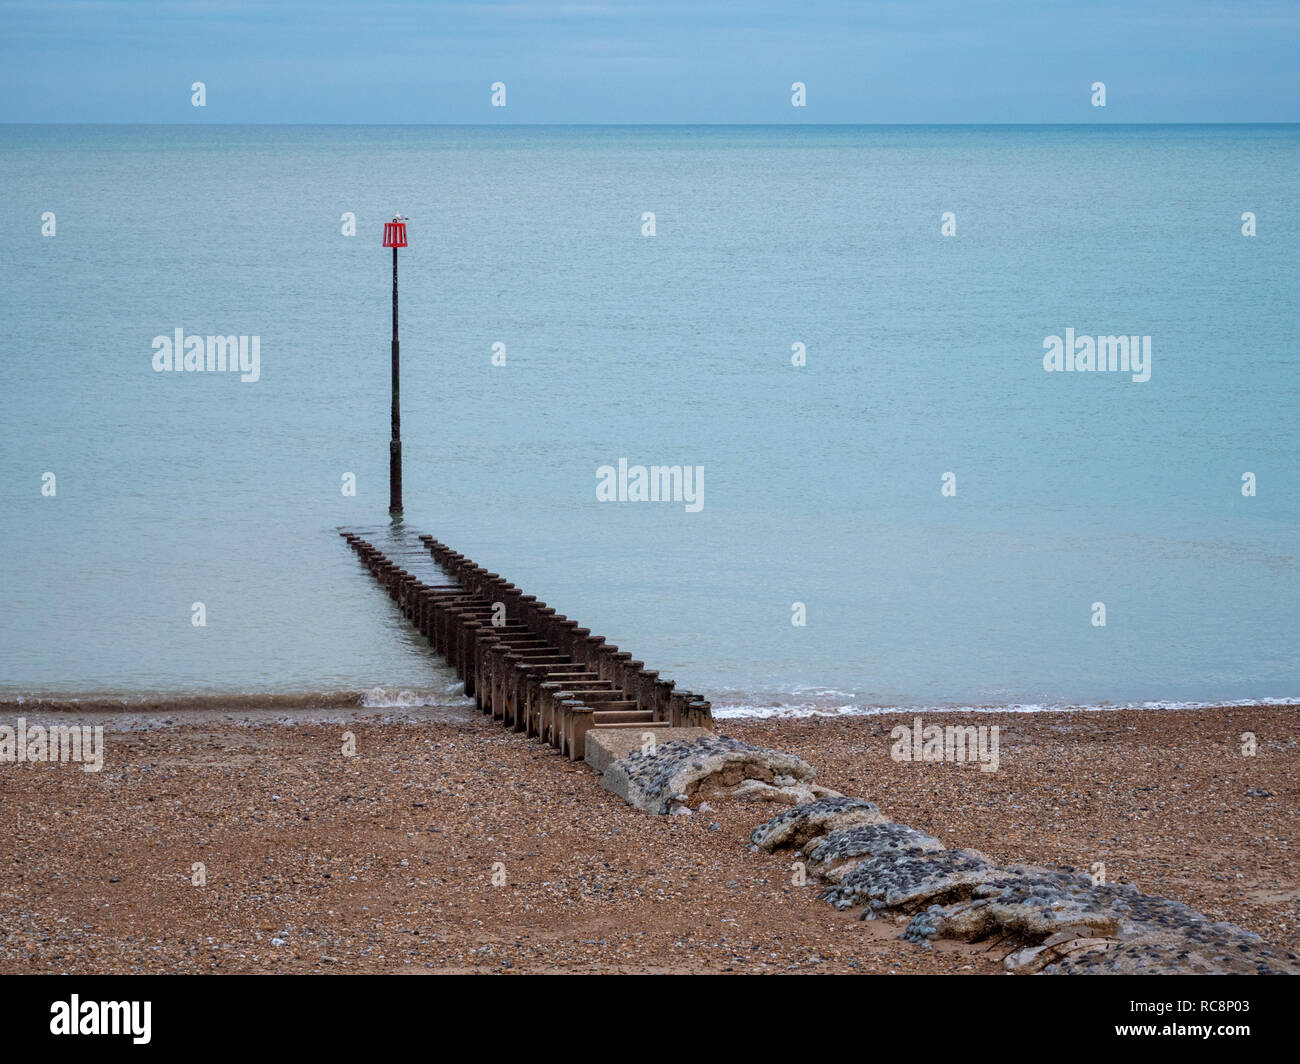 A view of a red marker post and groynes at the sshingle beach at Eastbourne UK on an overcast winter day with muted colours. - Stock Image